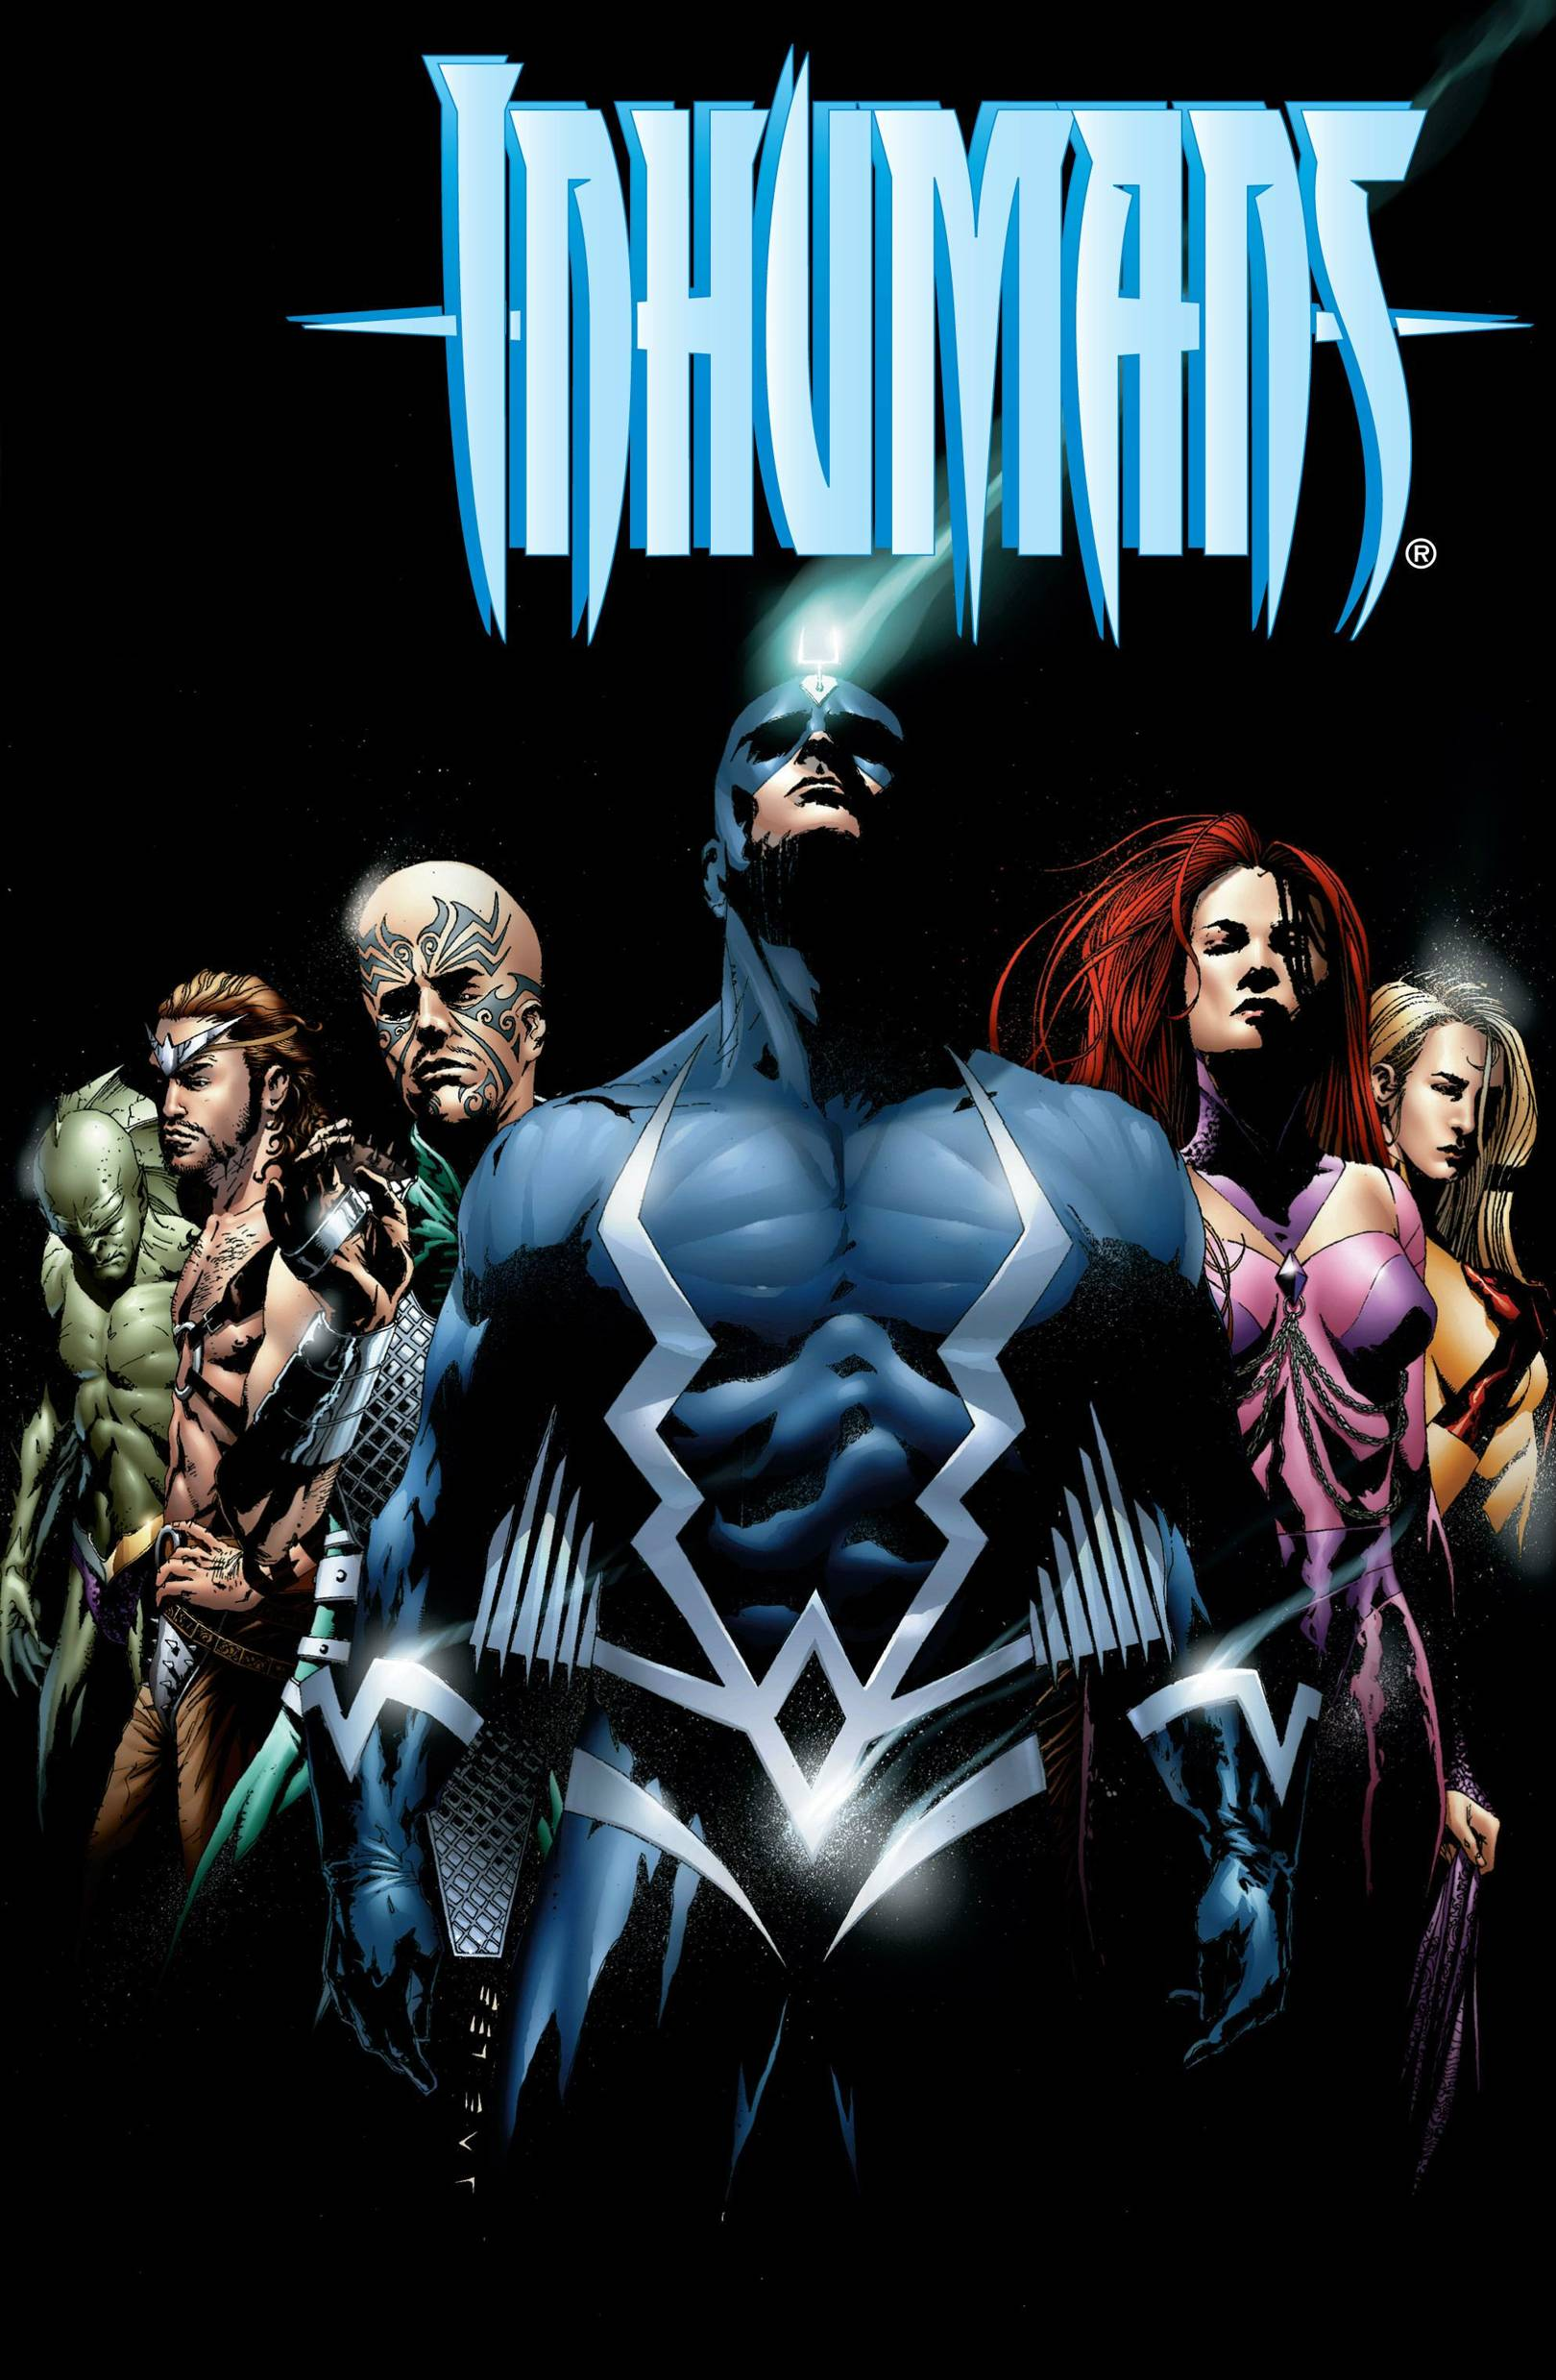 Marvel\'s The Inhumans comes to TV - and IMAX | WIRED UK